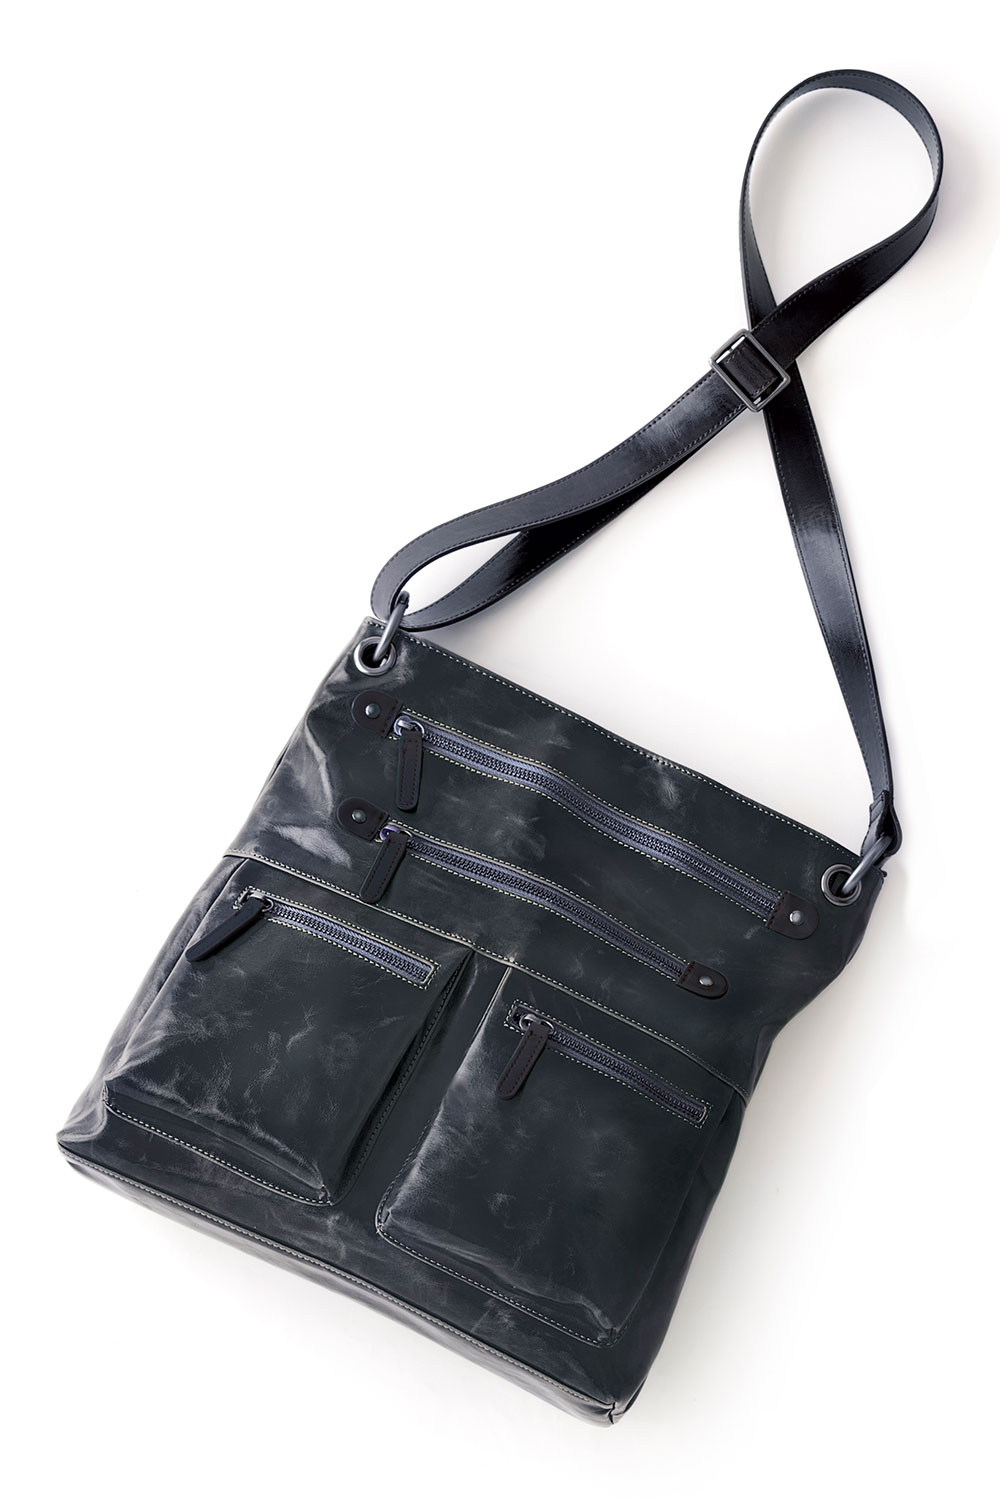 Shiraleah Handbags: Harper cross body bag - Graphite